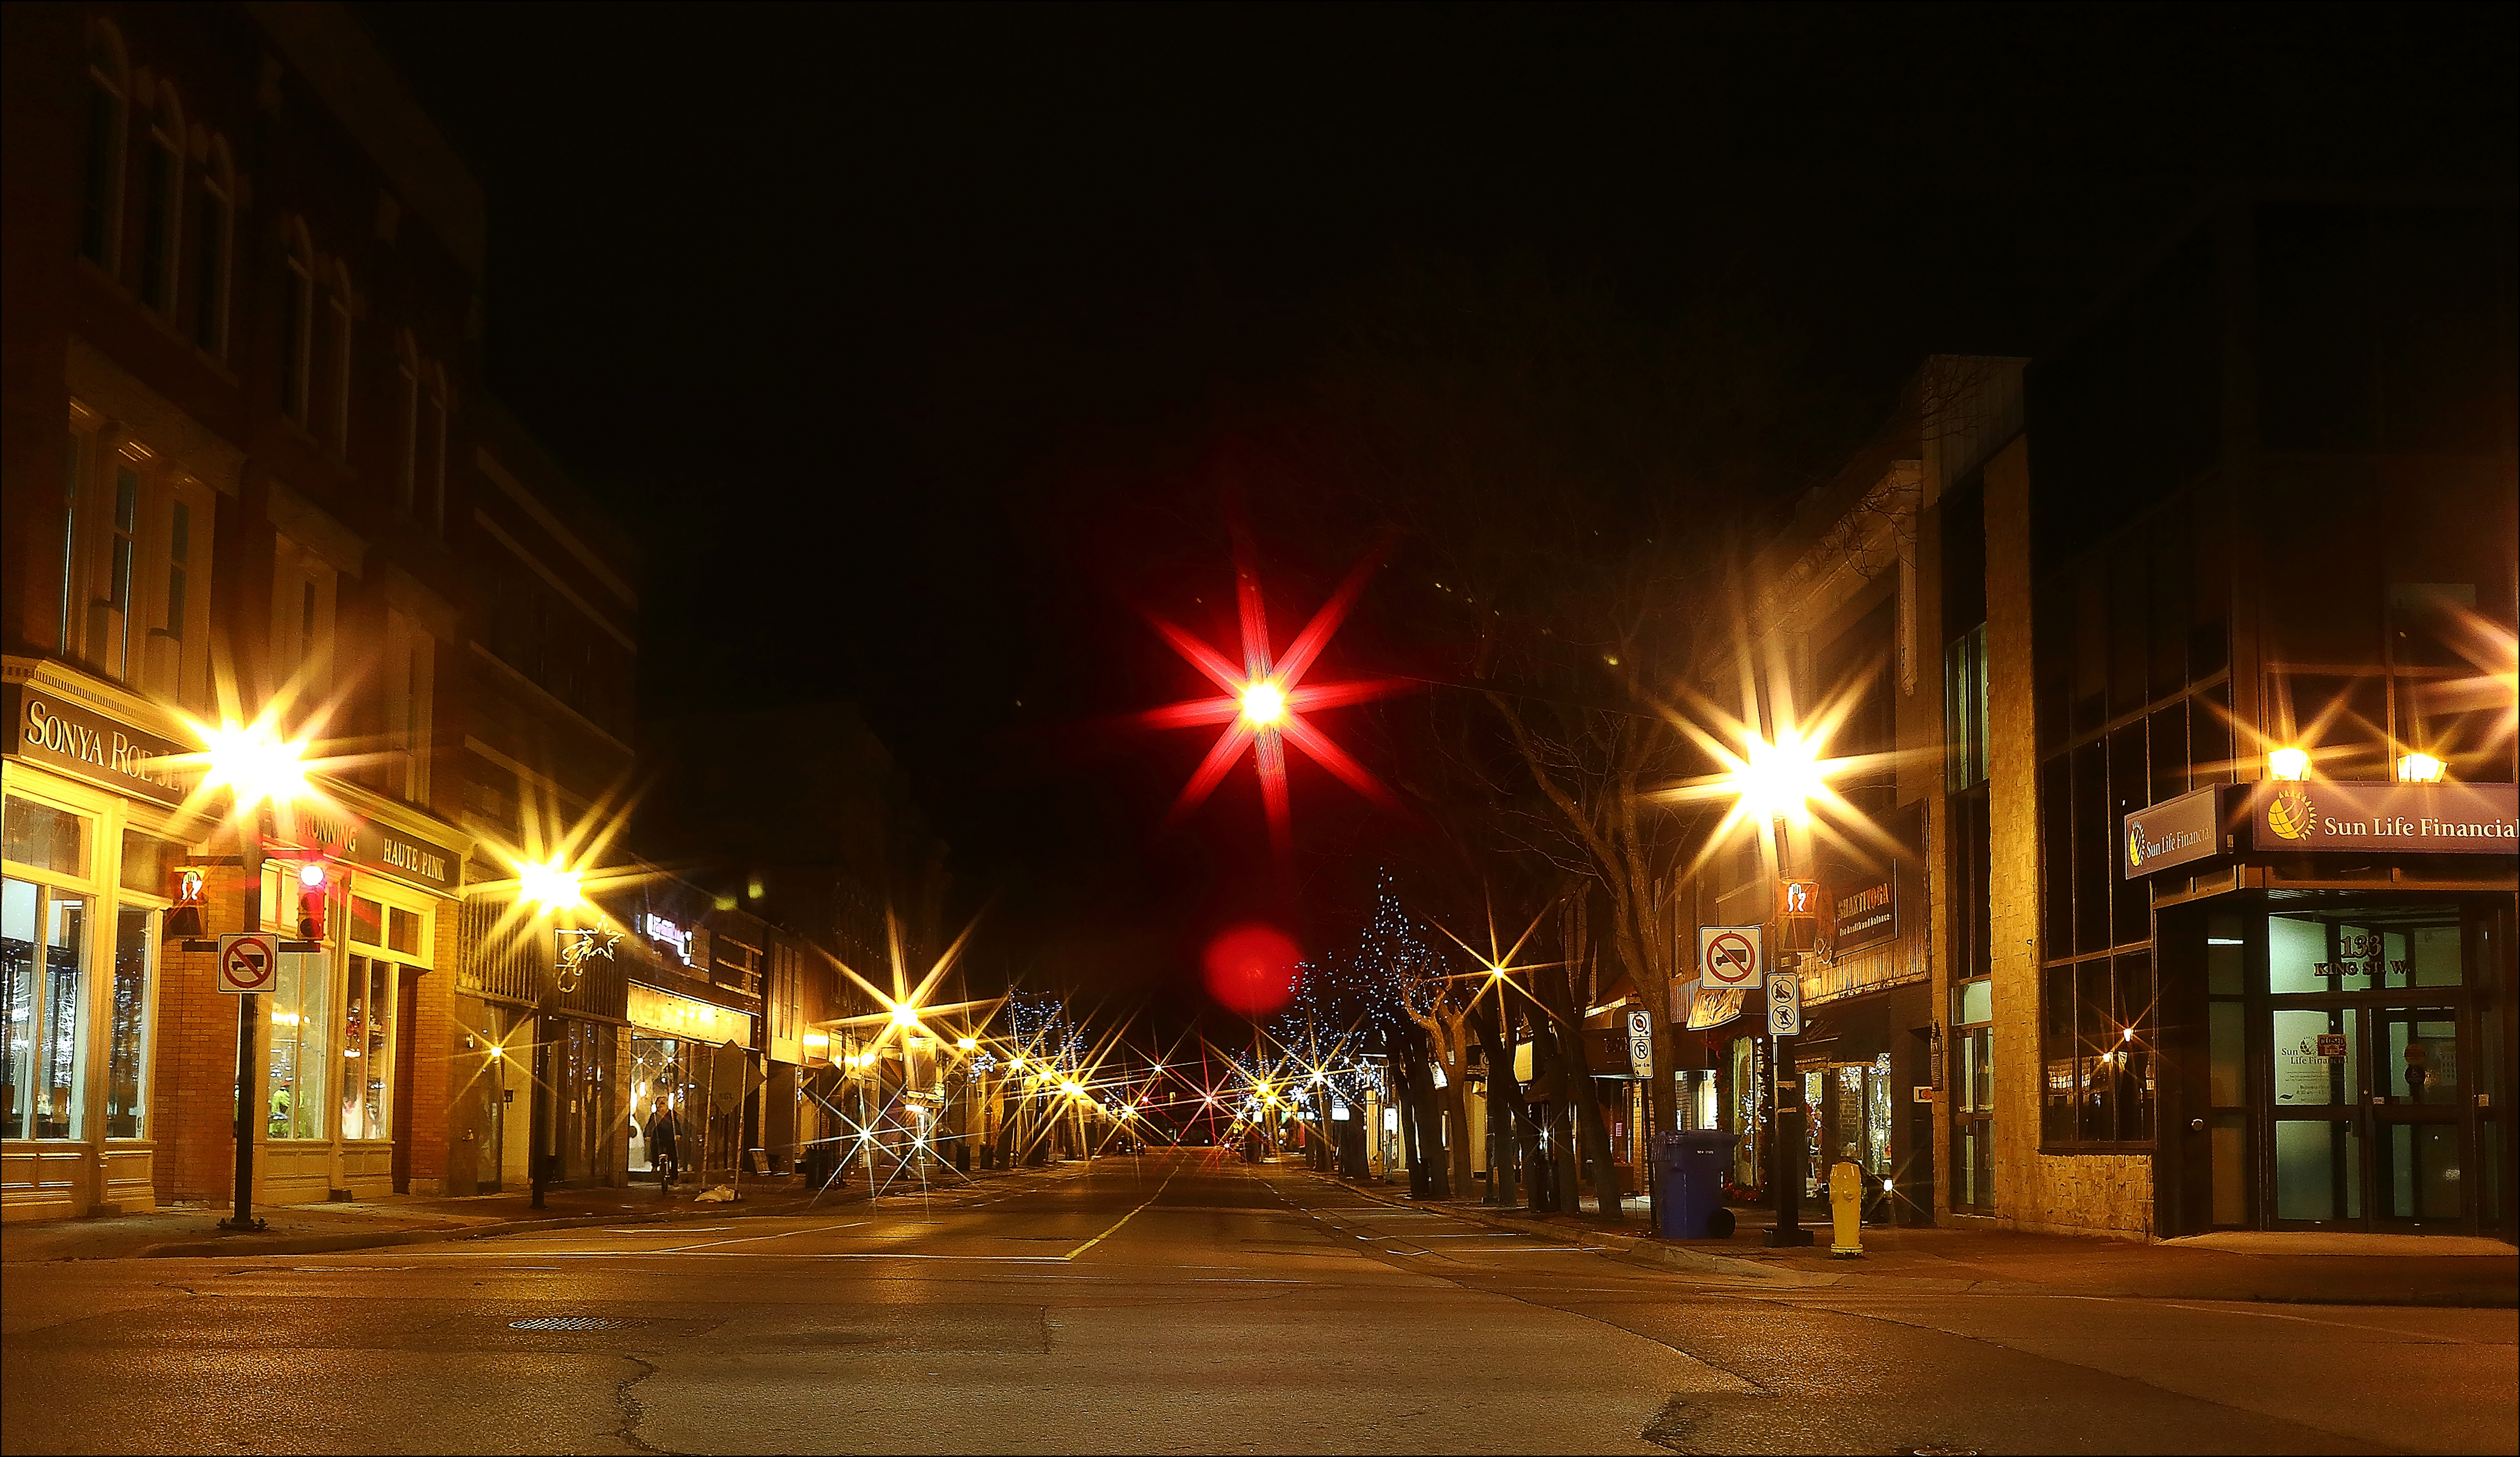 Quiet Streets On Christmas Night. christmas, streets, night, canon, lights, quiet, 6d, takenoutthewindow. buy photo